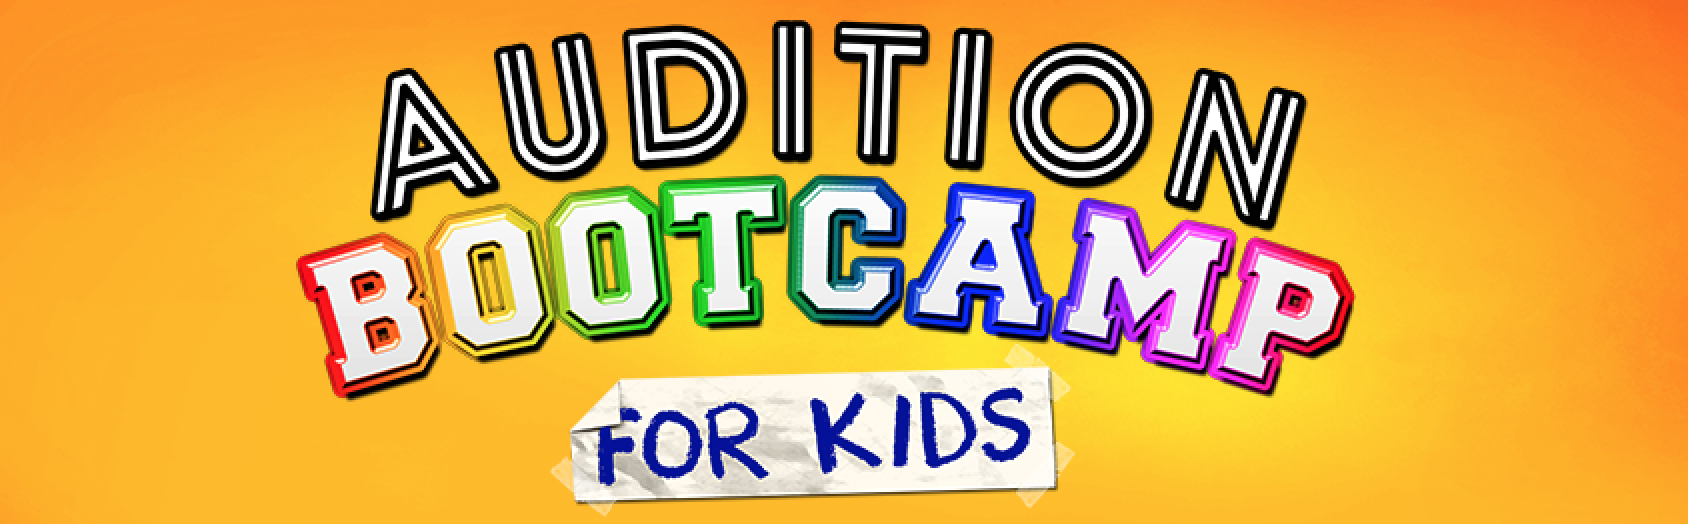 Audition Bootcamp for Kids poster